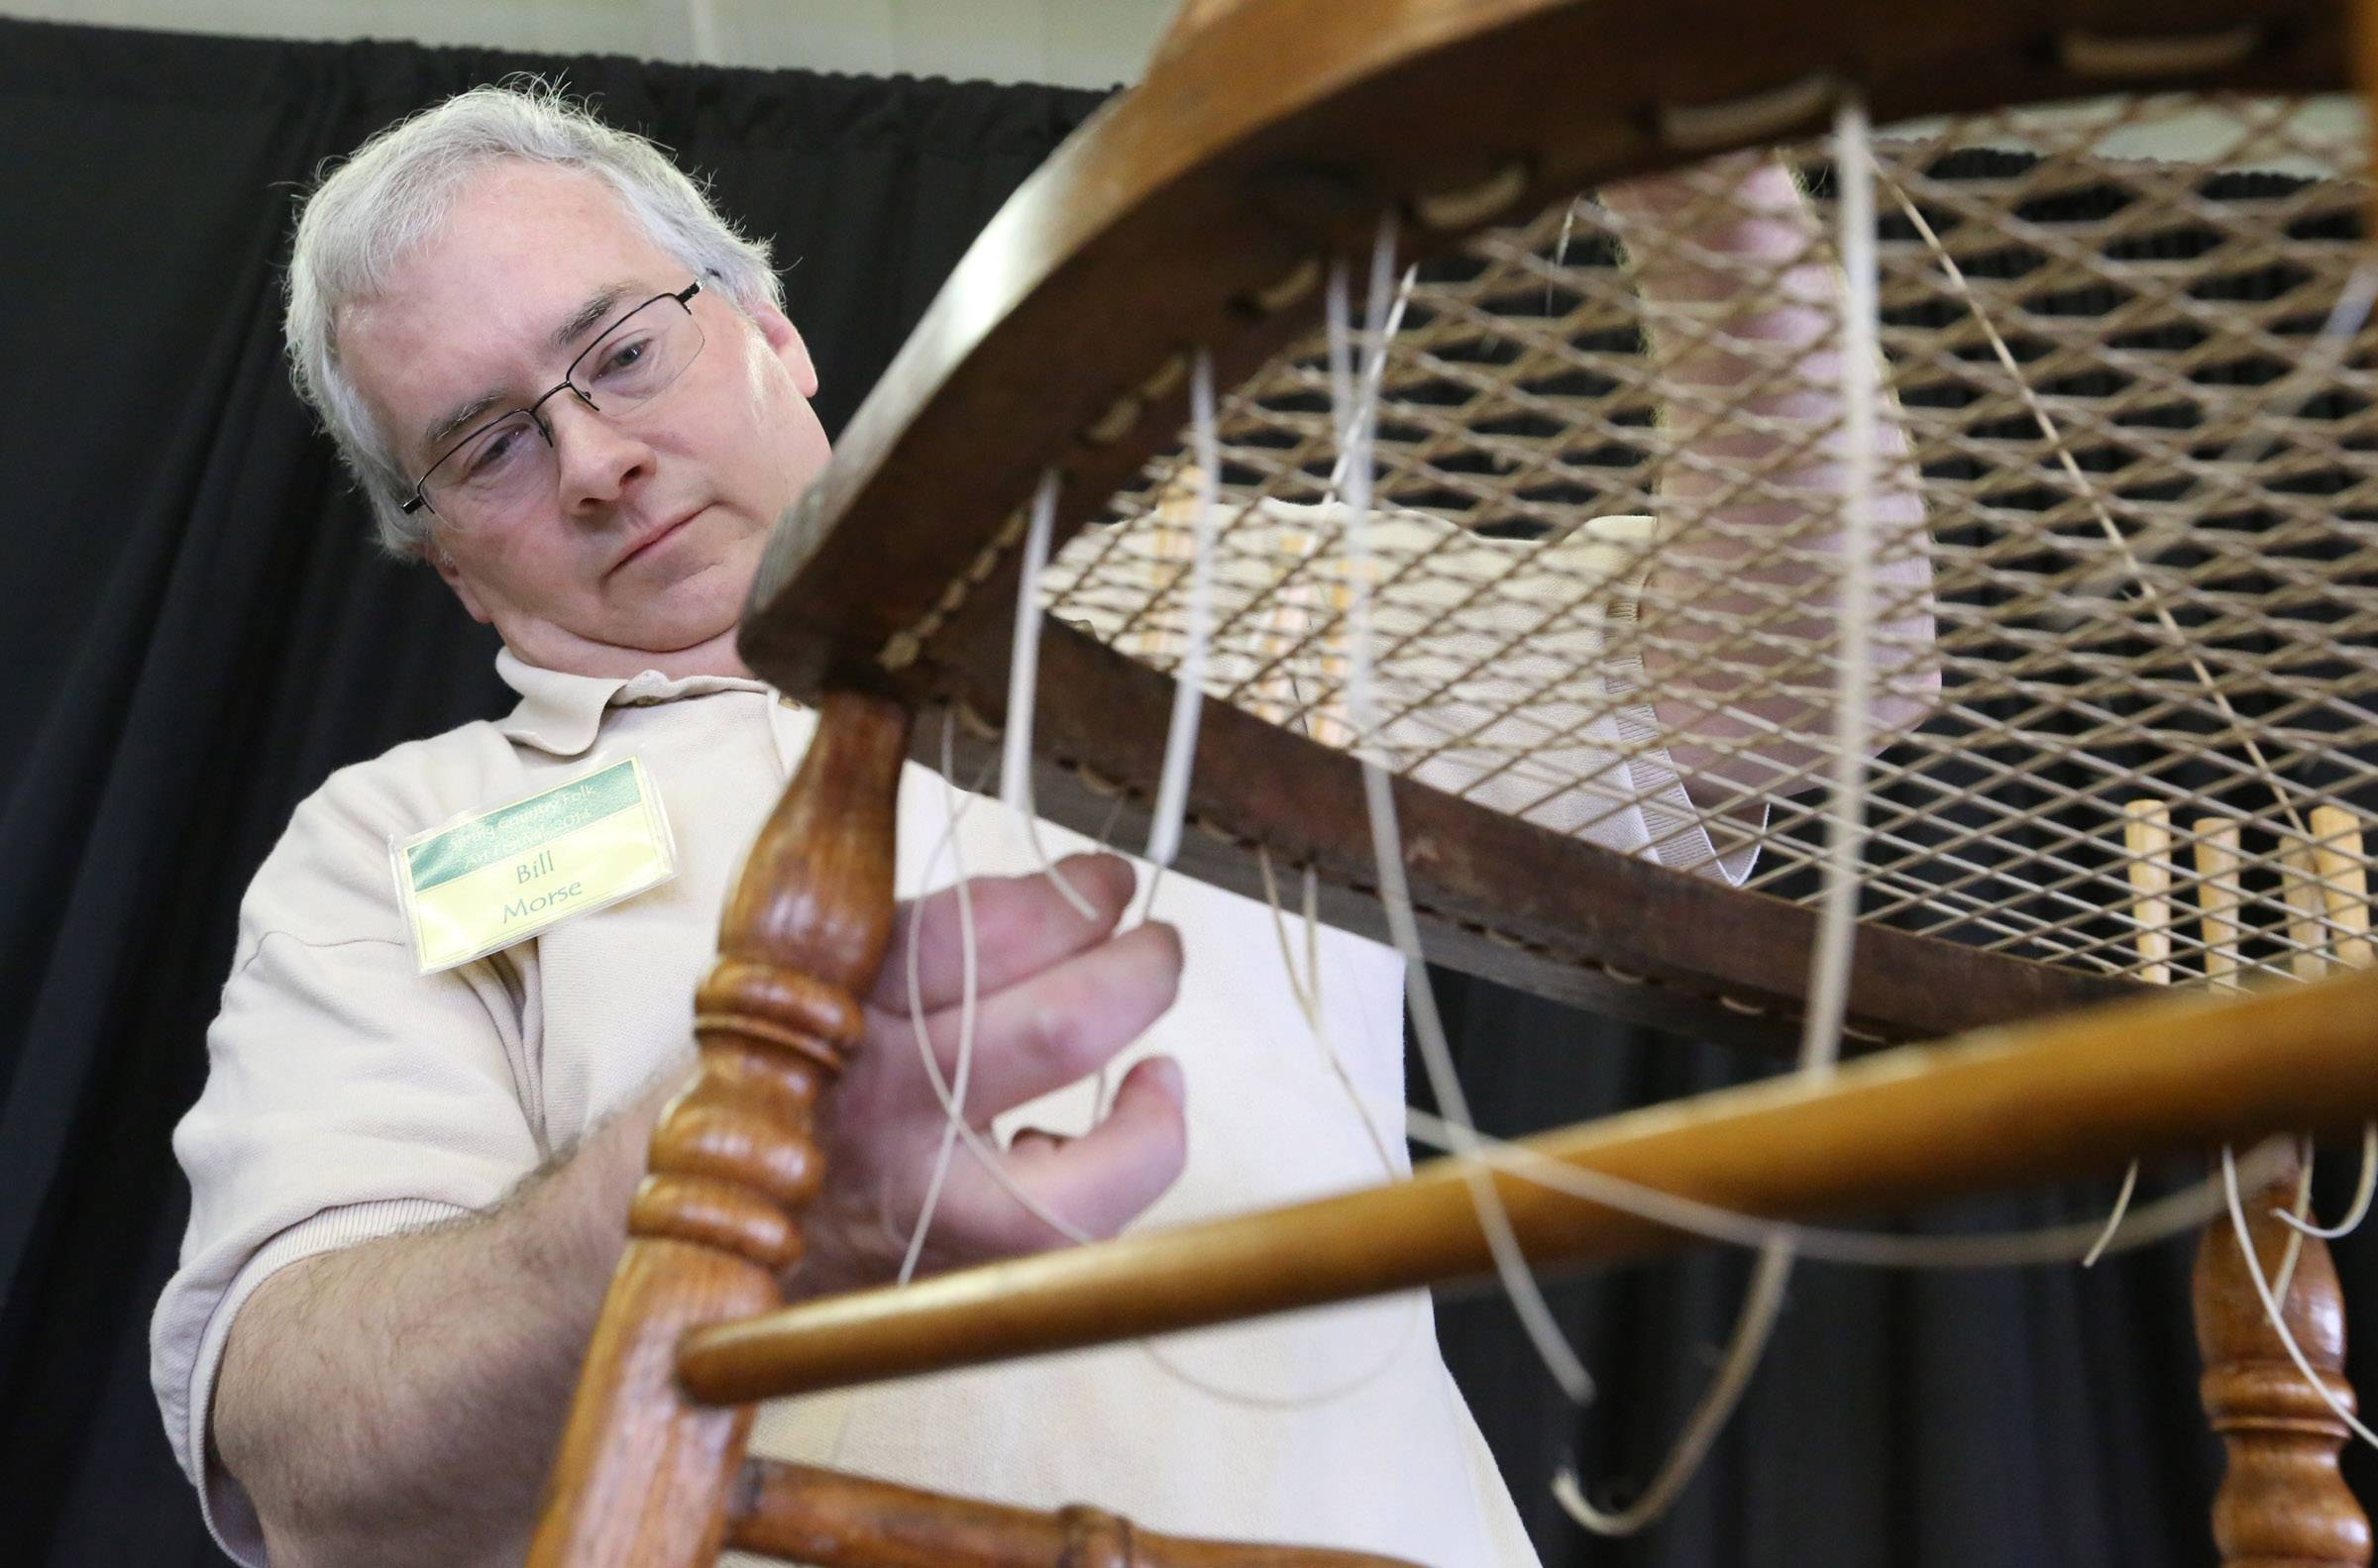 Bill Morse, of Elgin, weaves a seat for a wooden chair during a Spring Country Folk Art Festival at Kane County Fairgrounds on Saturday in St. Charles.